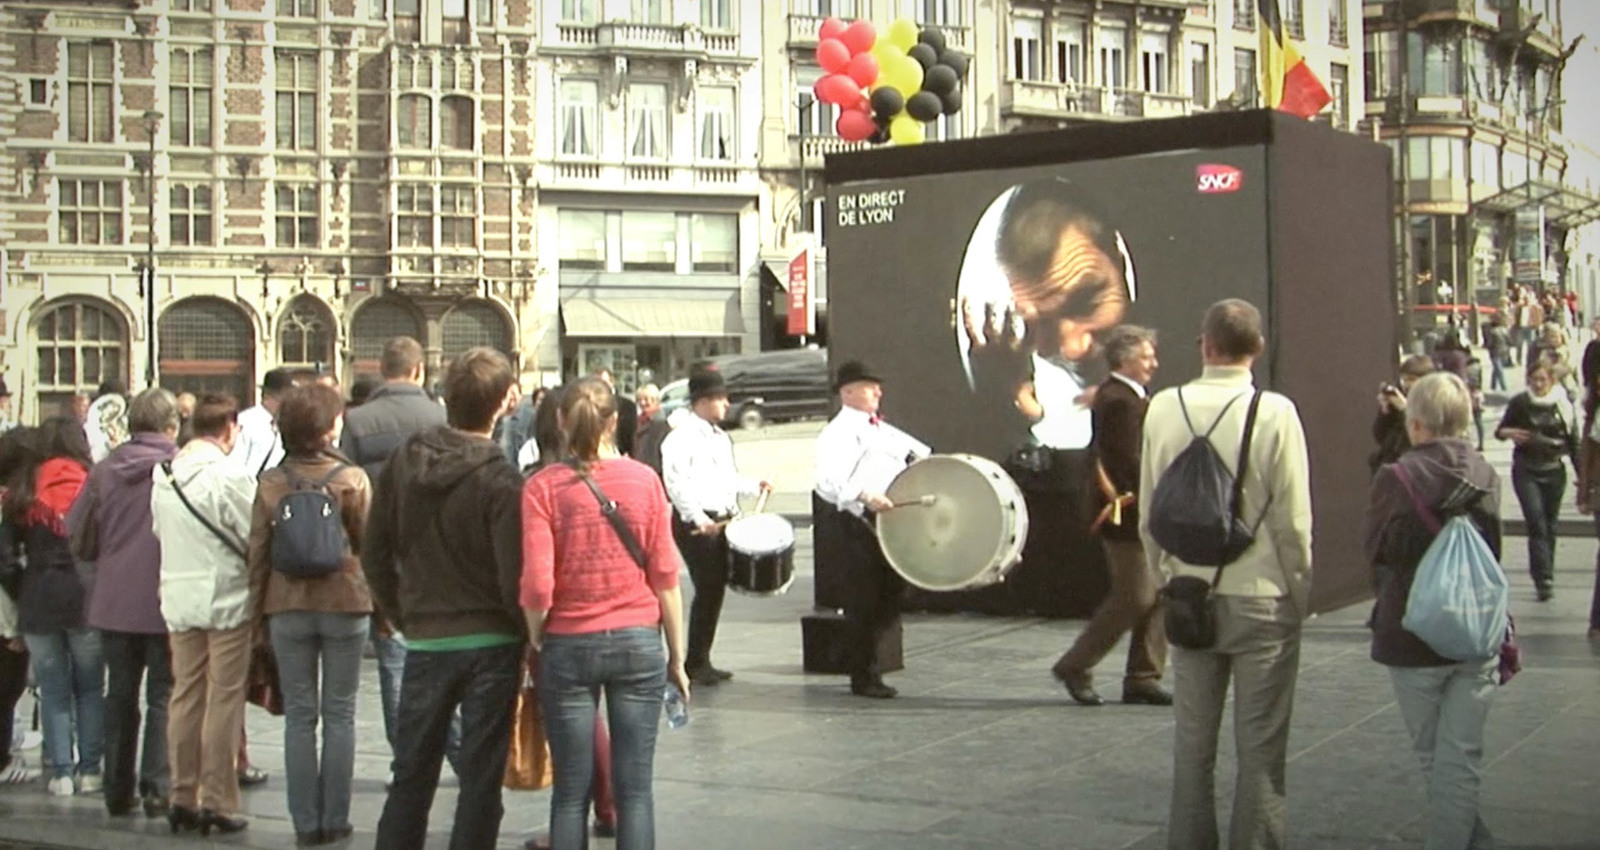 Take a look at Brussels